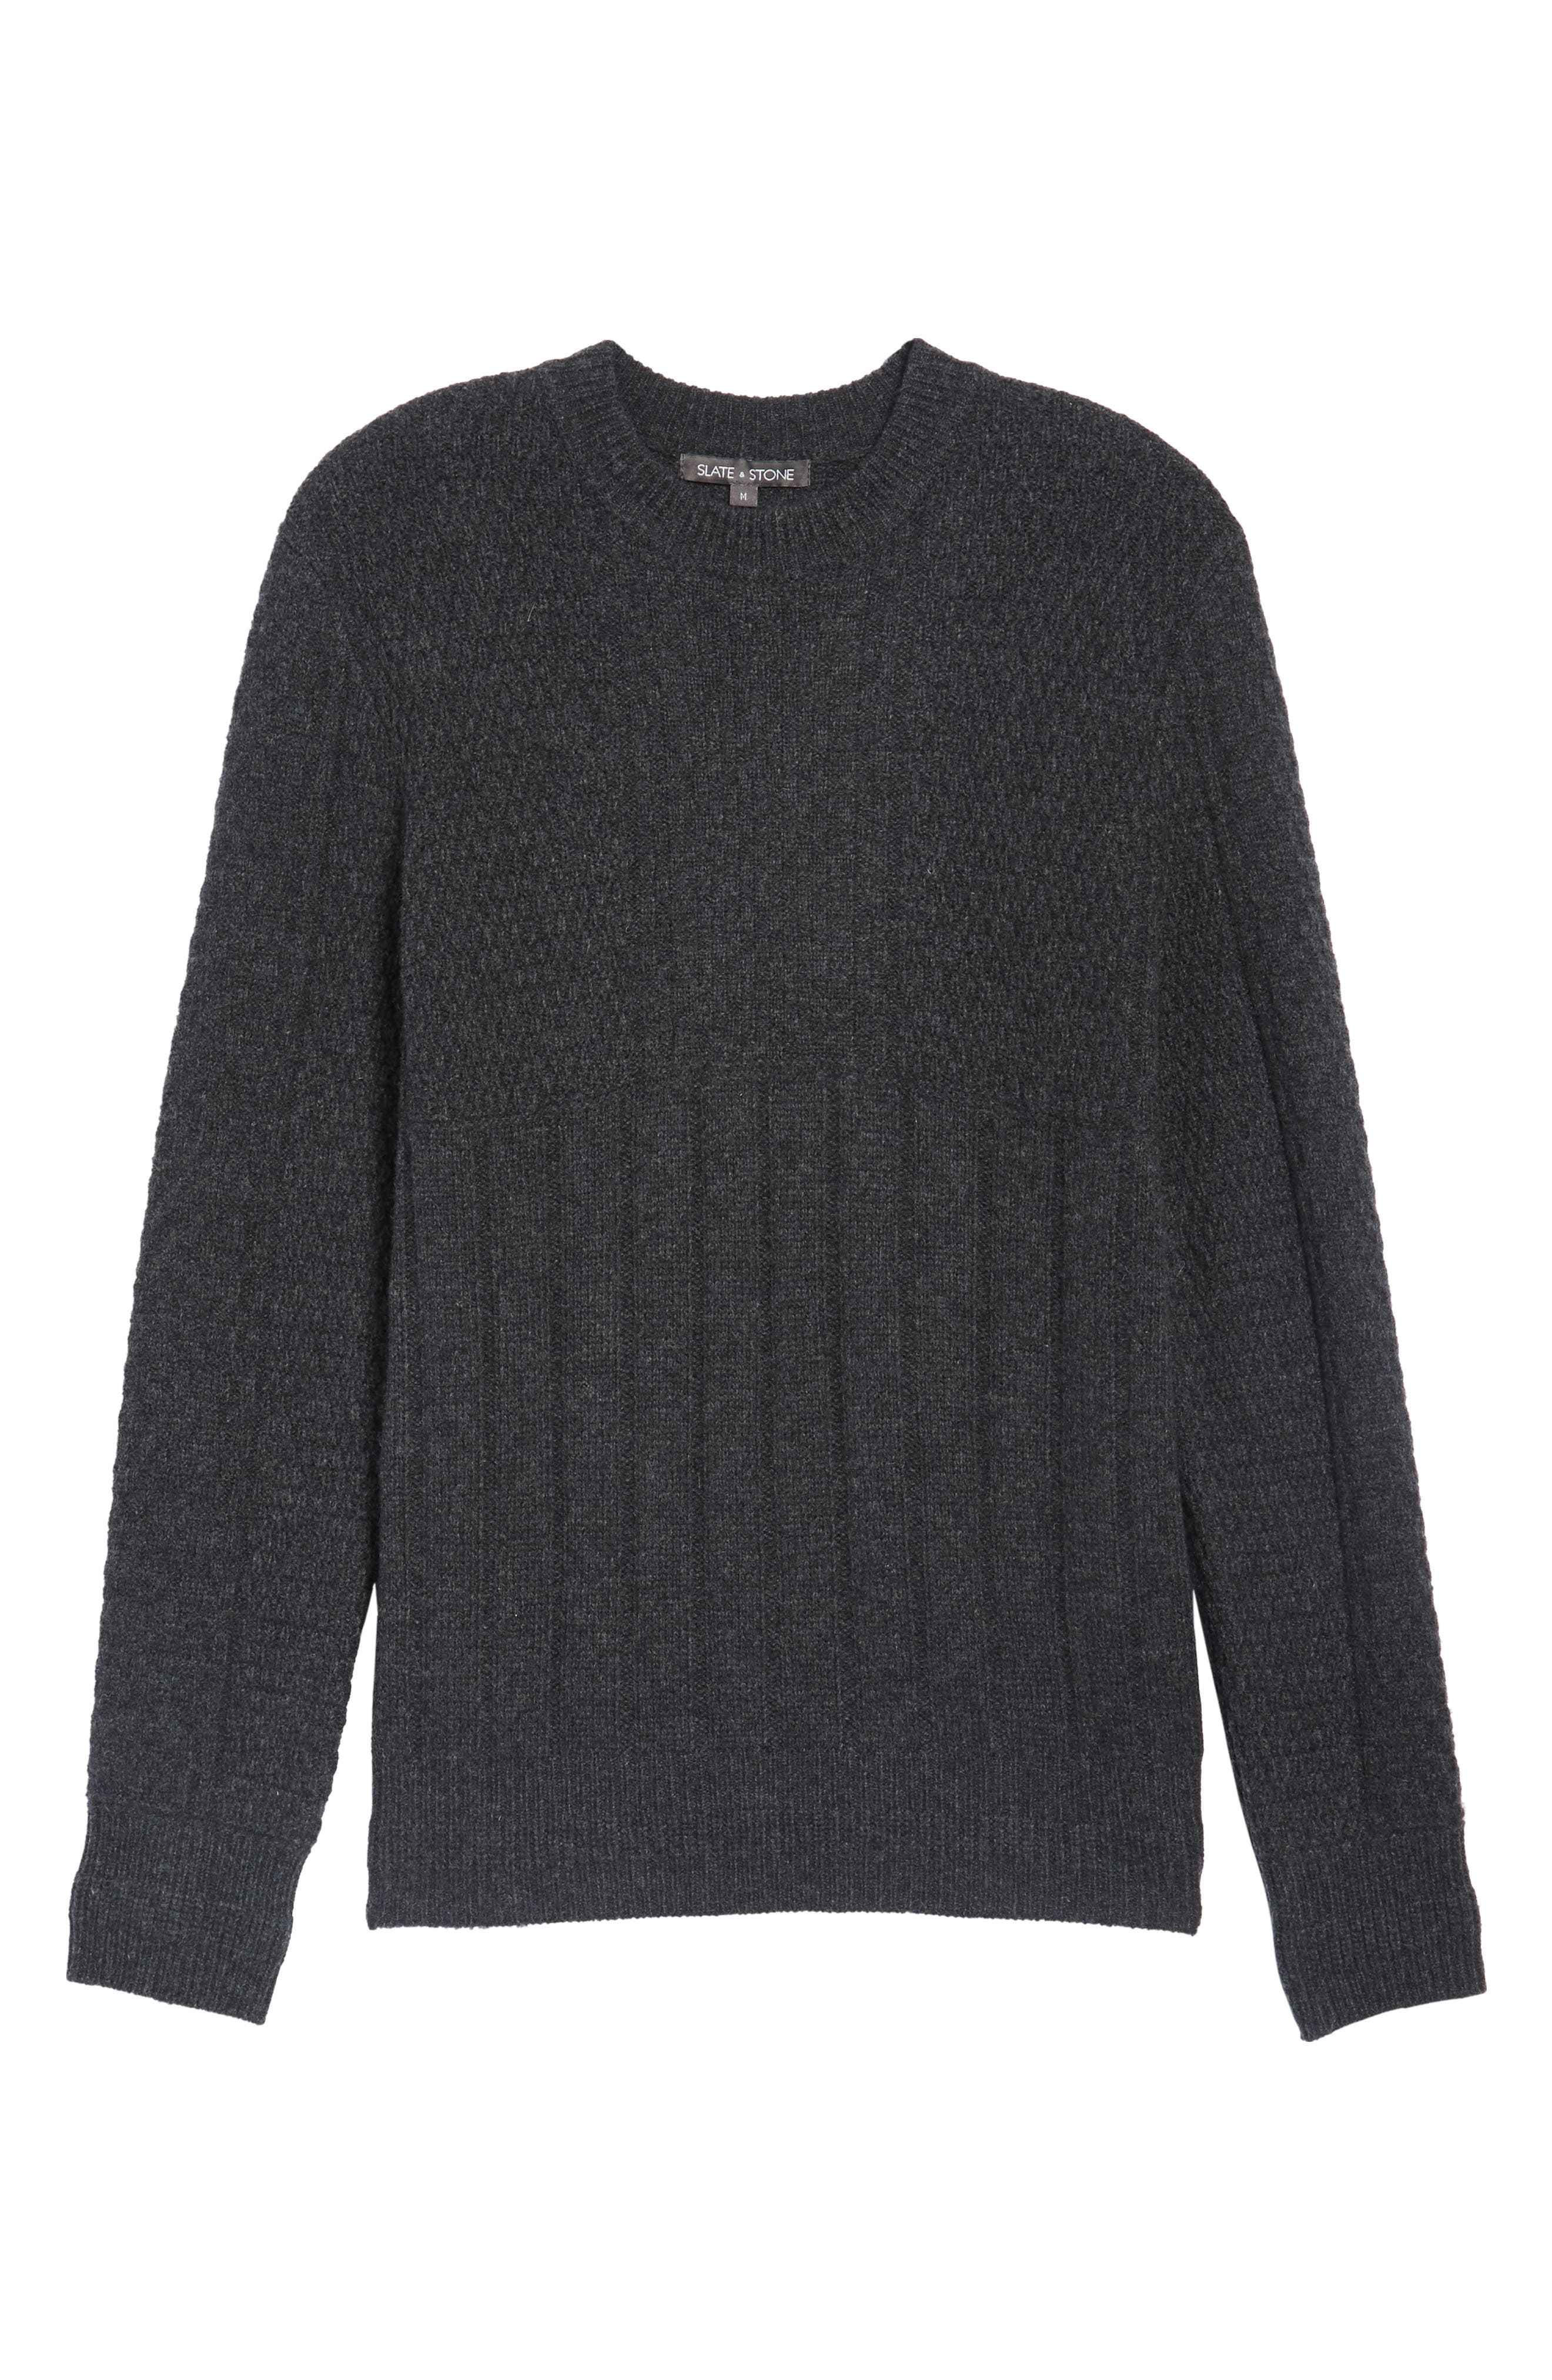 Wool Crewneck Sweater,                             Alternate thumbnail 6, color,                             Charcoal